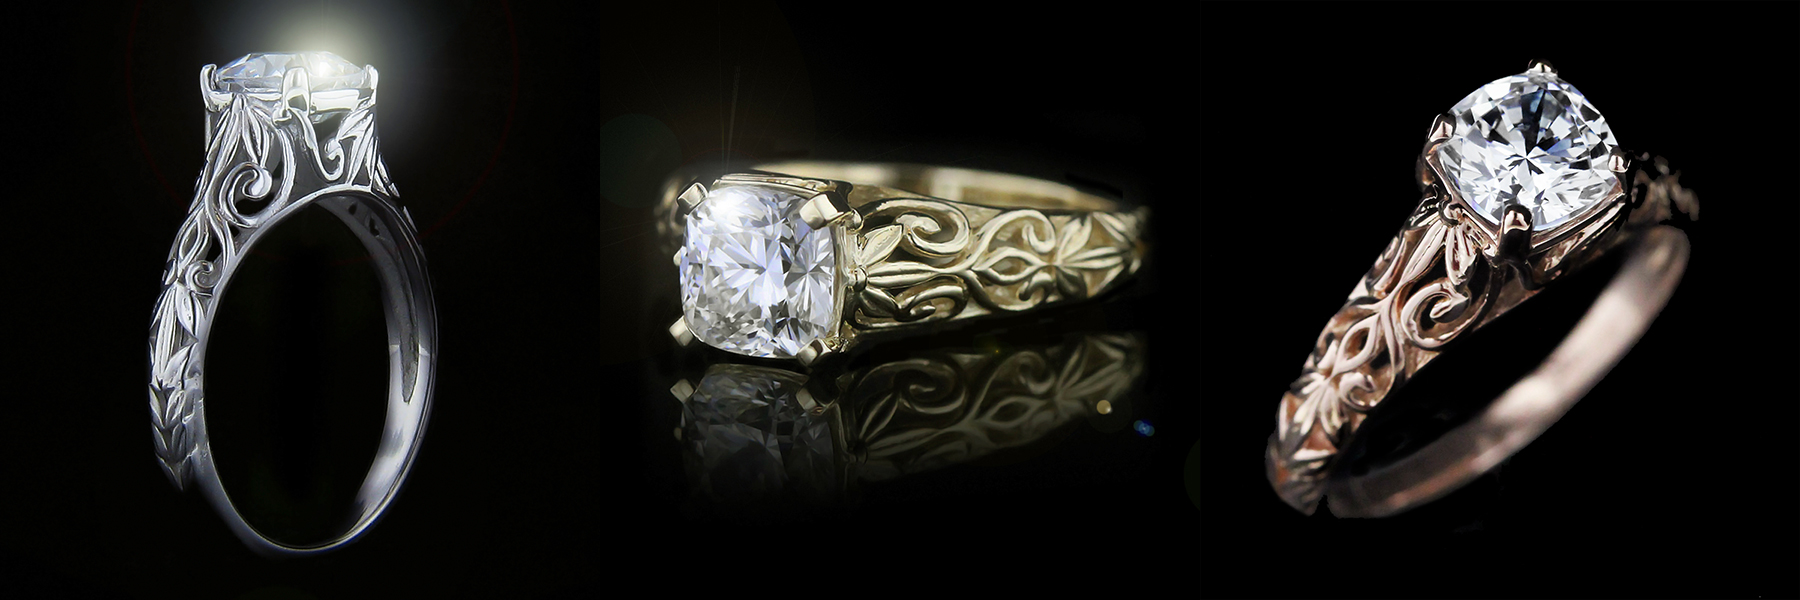 Tory Antique Engagement Ring | Choose your eco-friendly metal | MiaDonna